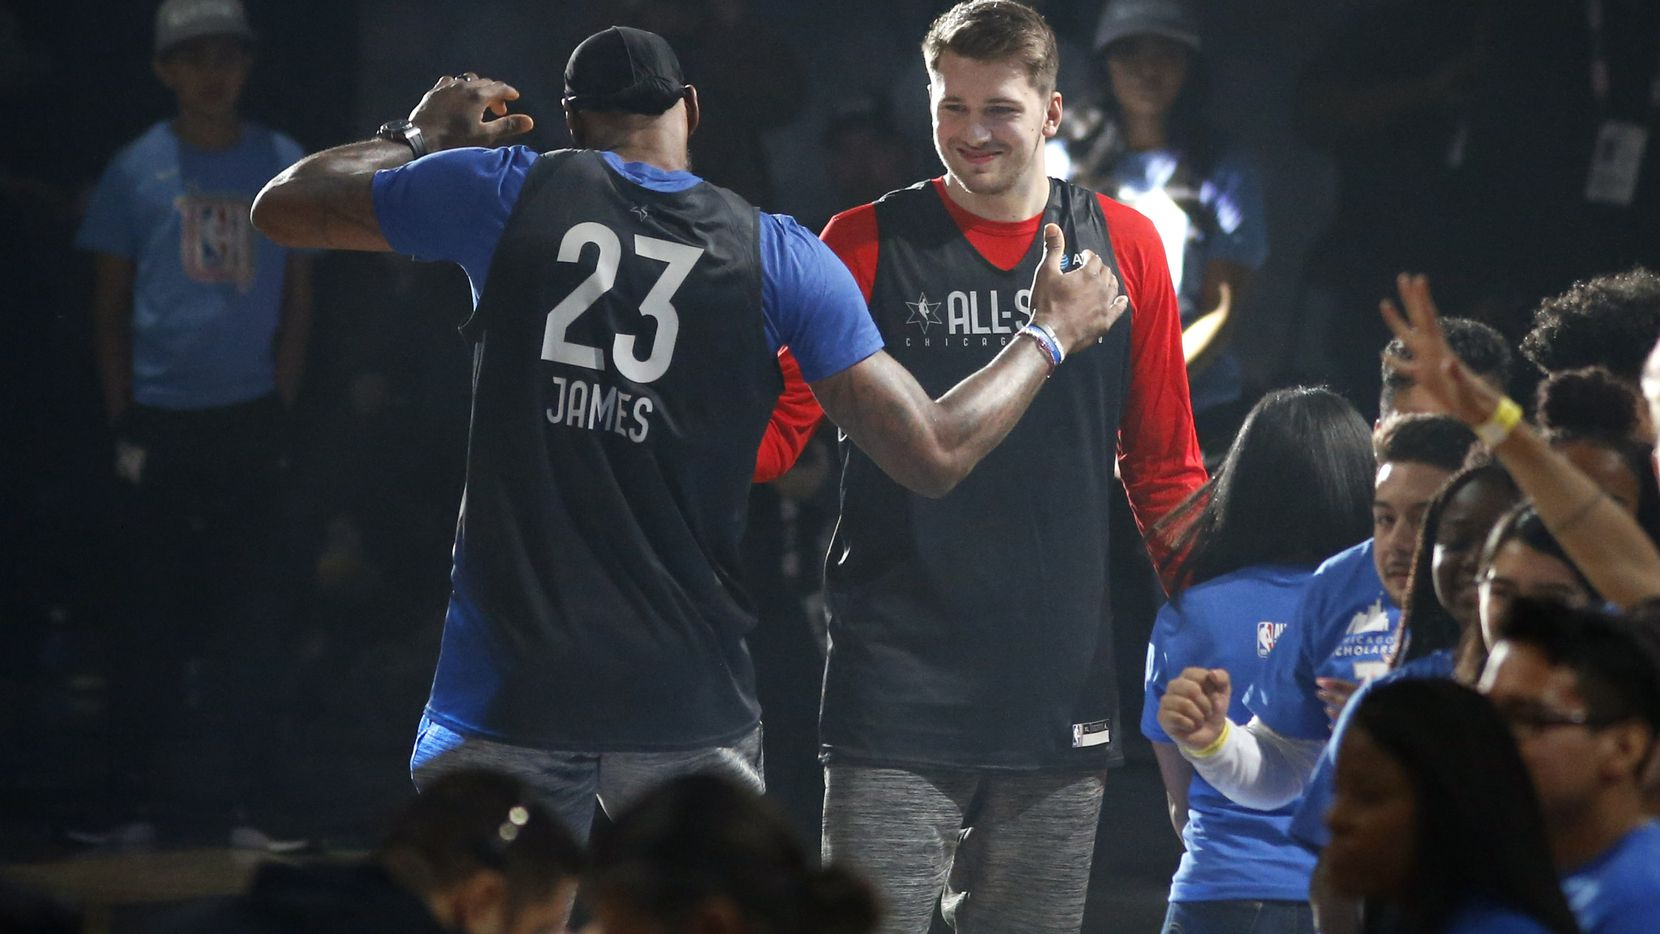 FILE - Lakers forward LeBron James (23) and Mavericks guard Luka Doncic (77) meet after player introductions during a practice for the 2020 NBA All-Star Game at Wintrust Arena in Chicago on Saturday, Feb. 15, 2020.